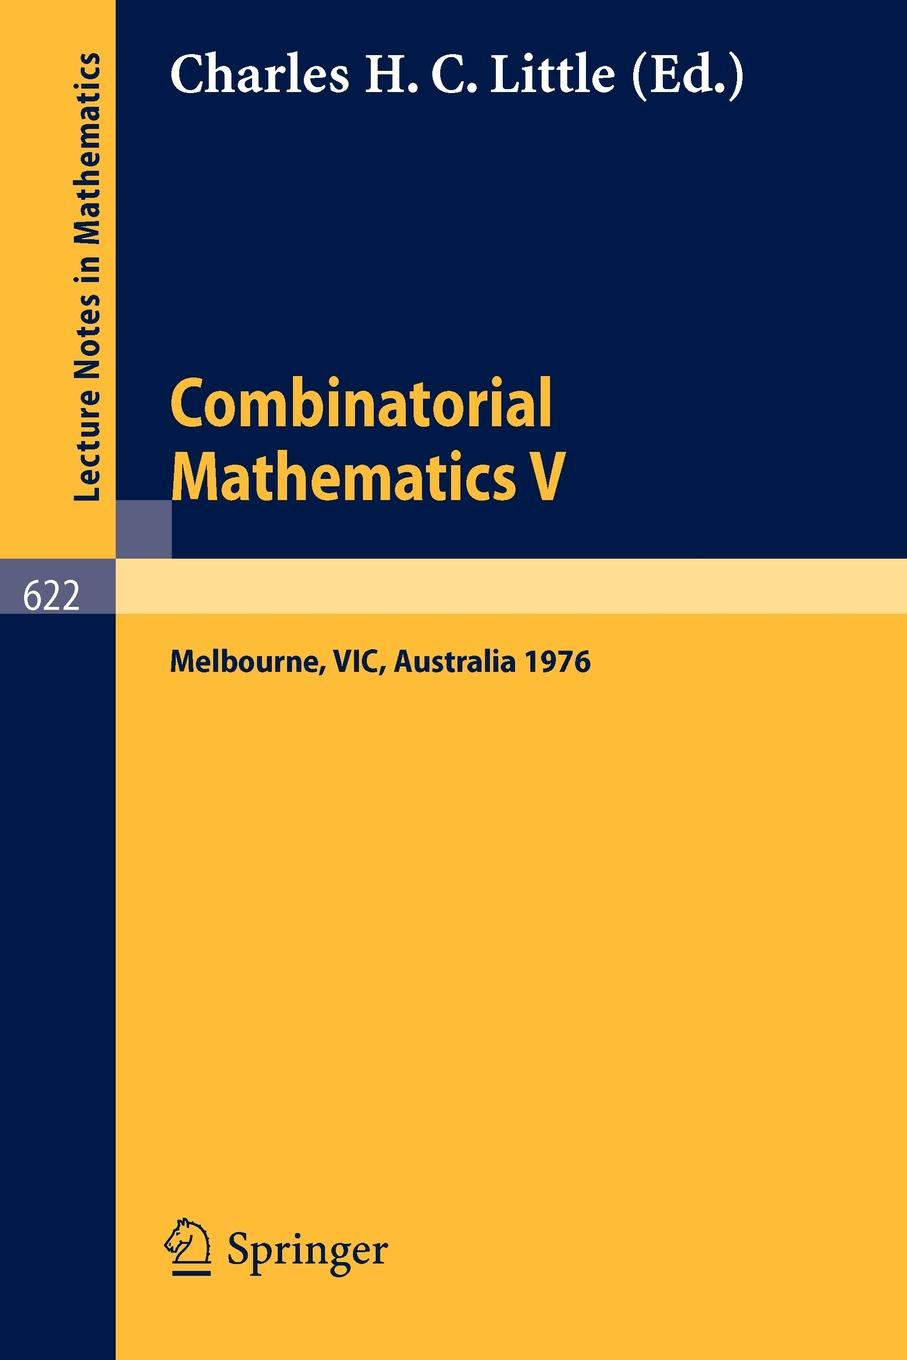 Combinatorial Mathematics V. Proceedings of the Fifth Australian Conference, Held at the Royal Melbourne Institute of Technology, August 24 - 26, 1 train melbourne